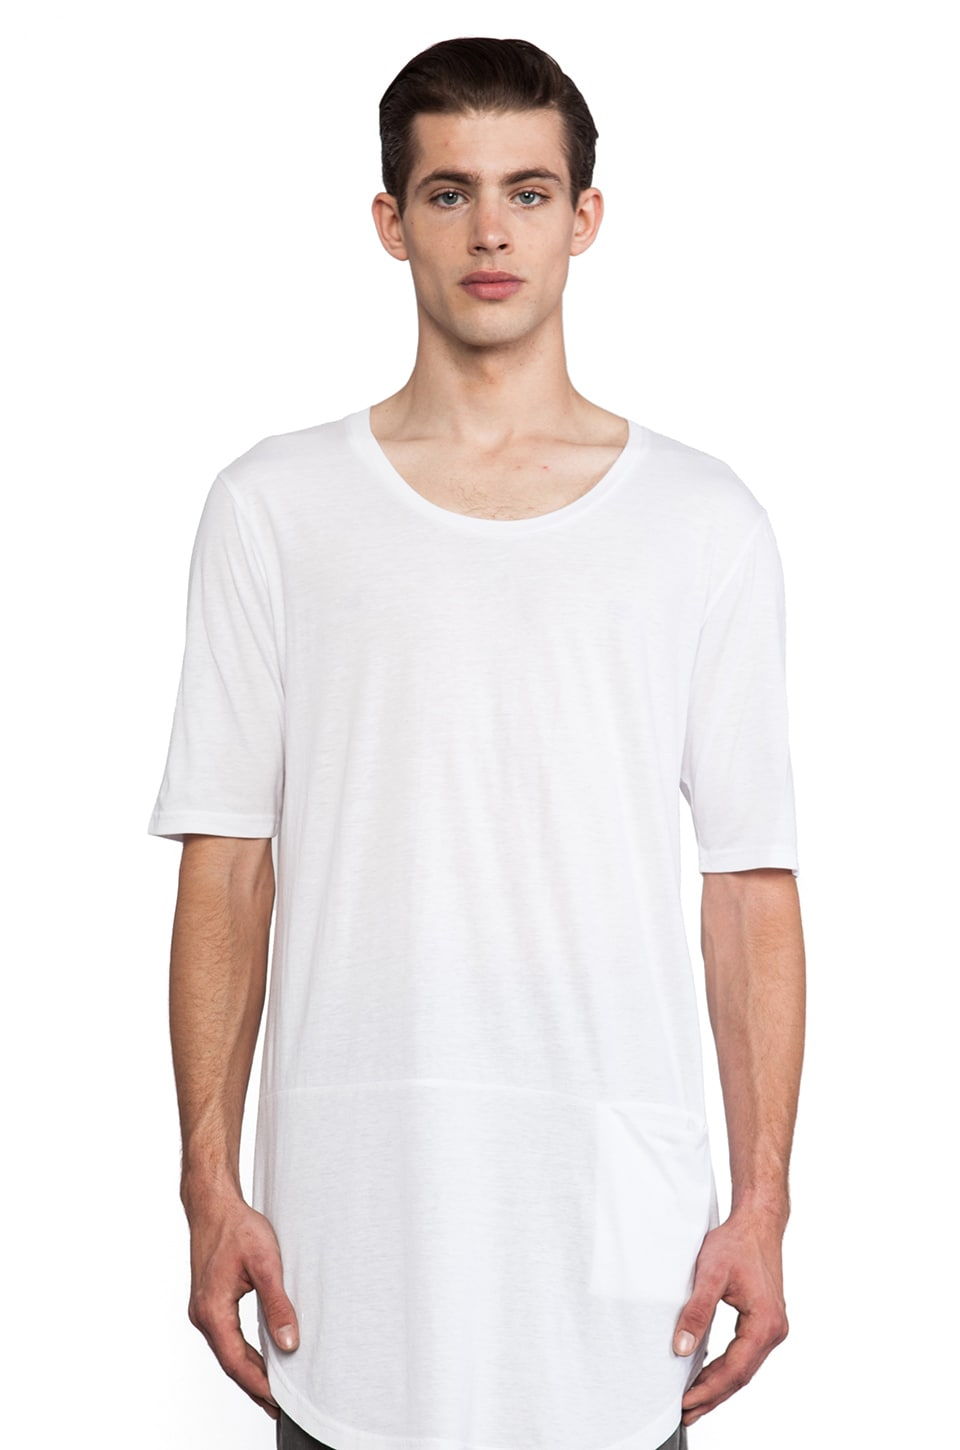 Munsoo Kwon Deep Neck Oversized Tee in White